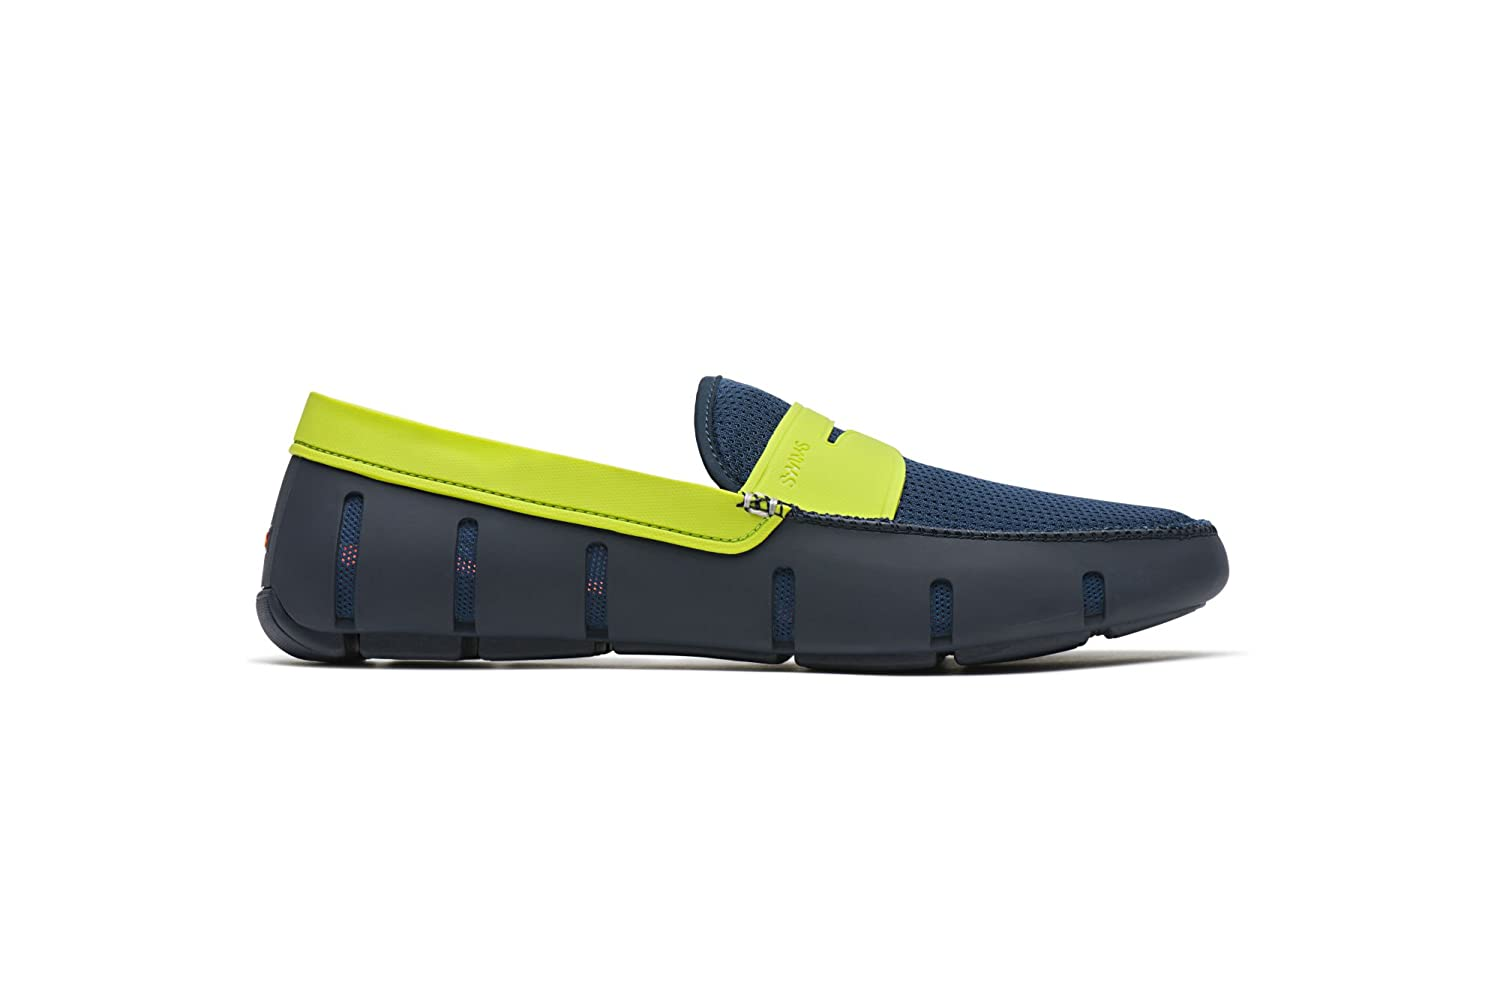 23571c05710 SWIMS Penny Loafer Navy Green Mens Water Shoe Size 9M  Amazon.co.uk  Shoes    Bags